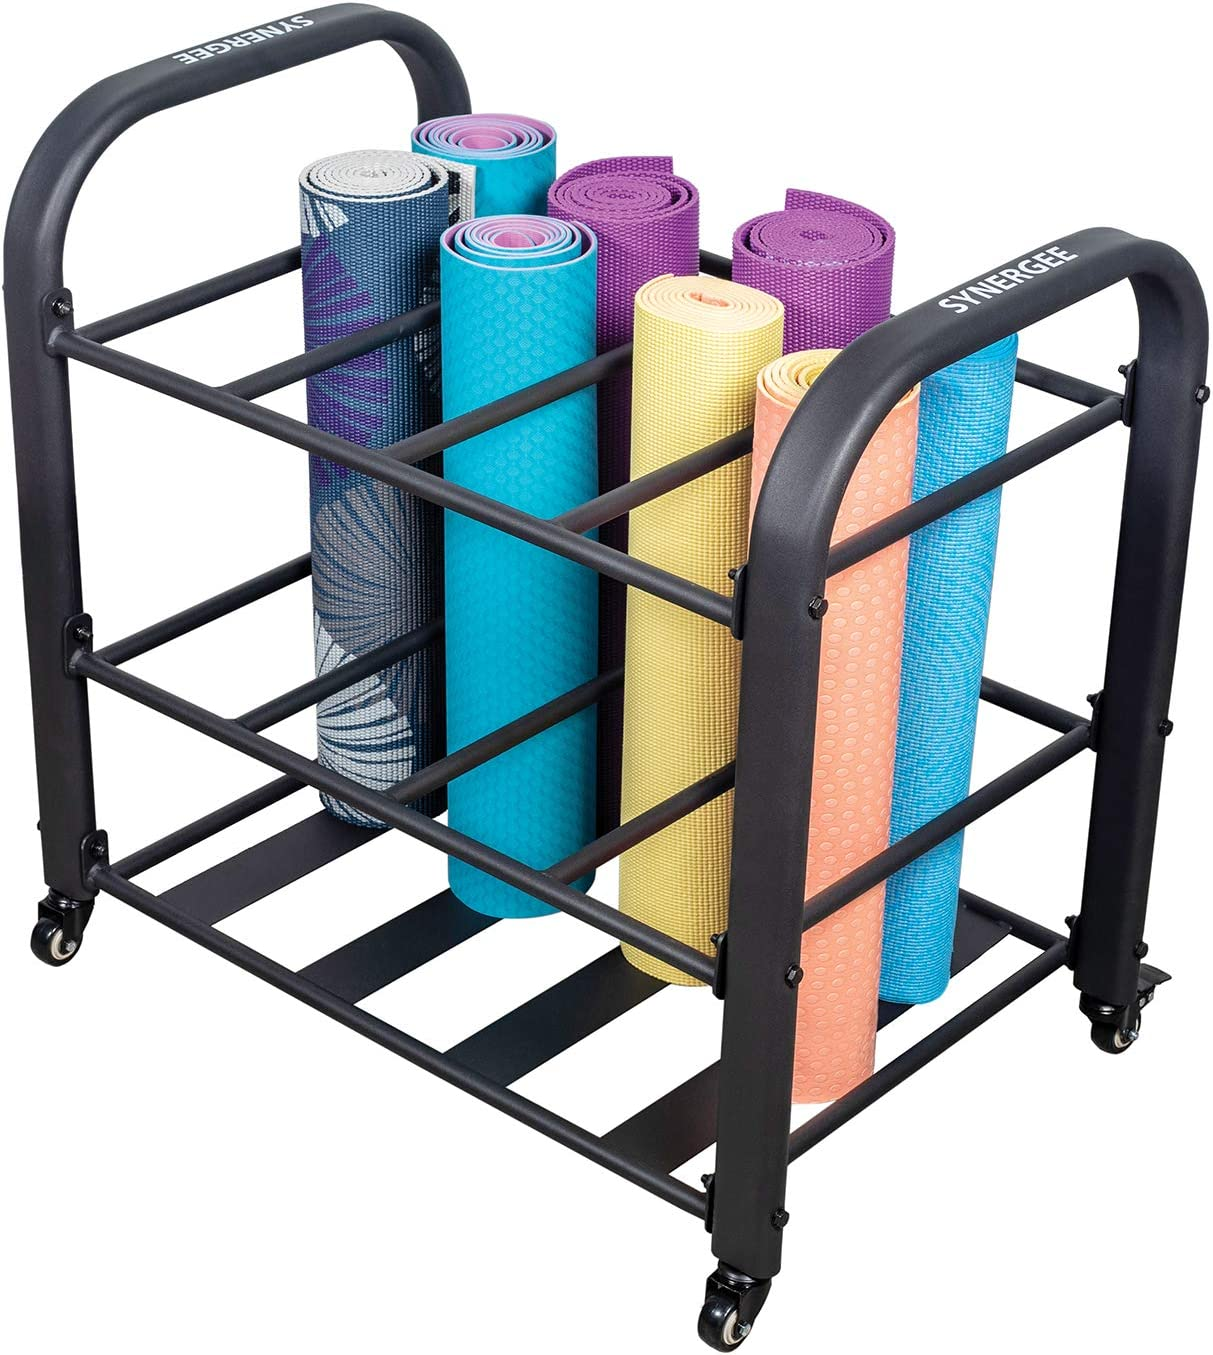 Amazon Com Synergee Yoga Mat Storage Rack Storage Cart For Yoga Mats Foam Rollers Mobility Equipment Perfect For Yoga Studio Or Commercial Gym Sports Outdoors